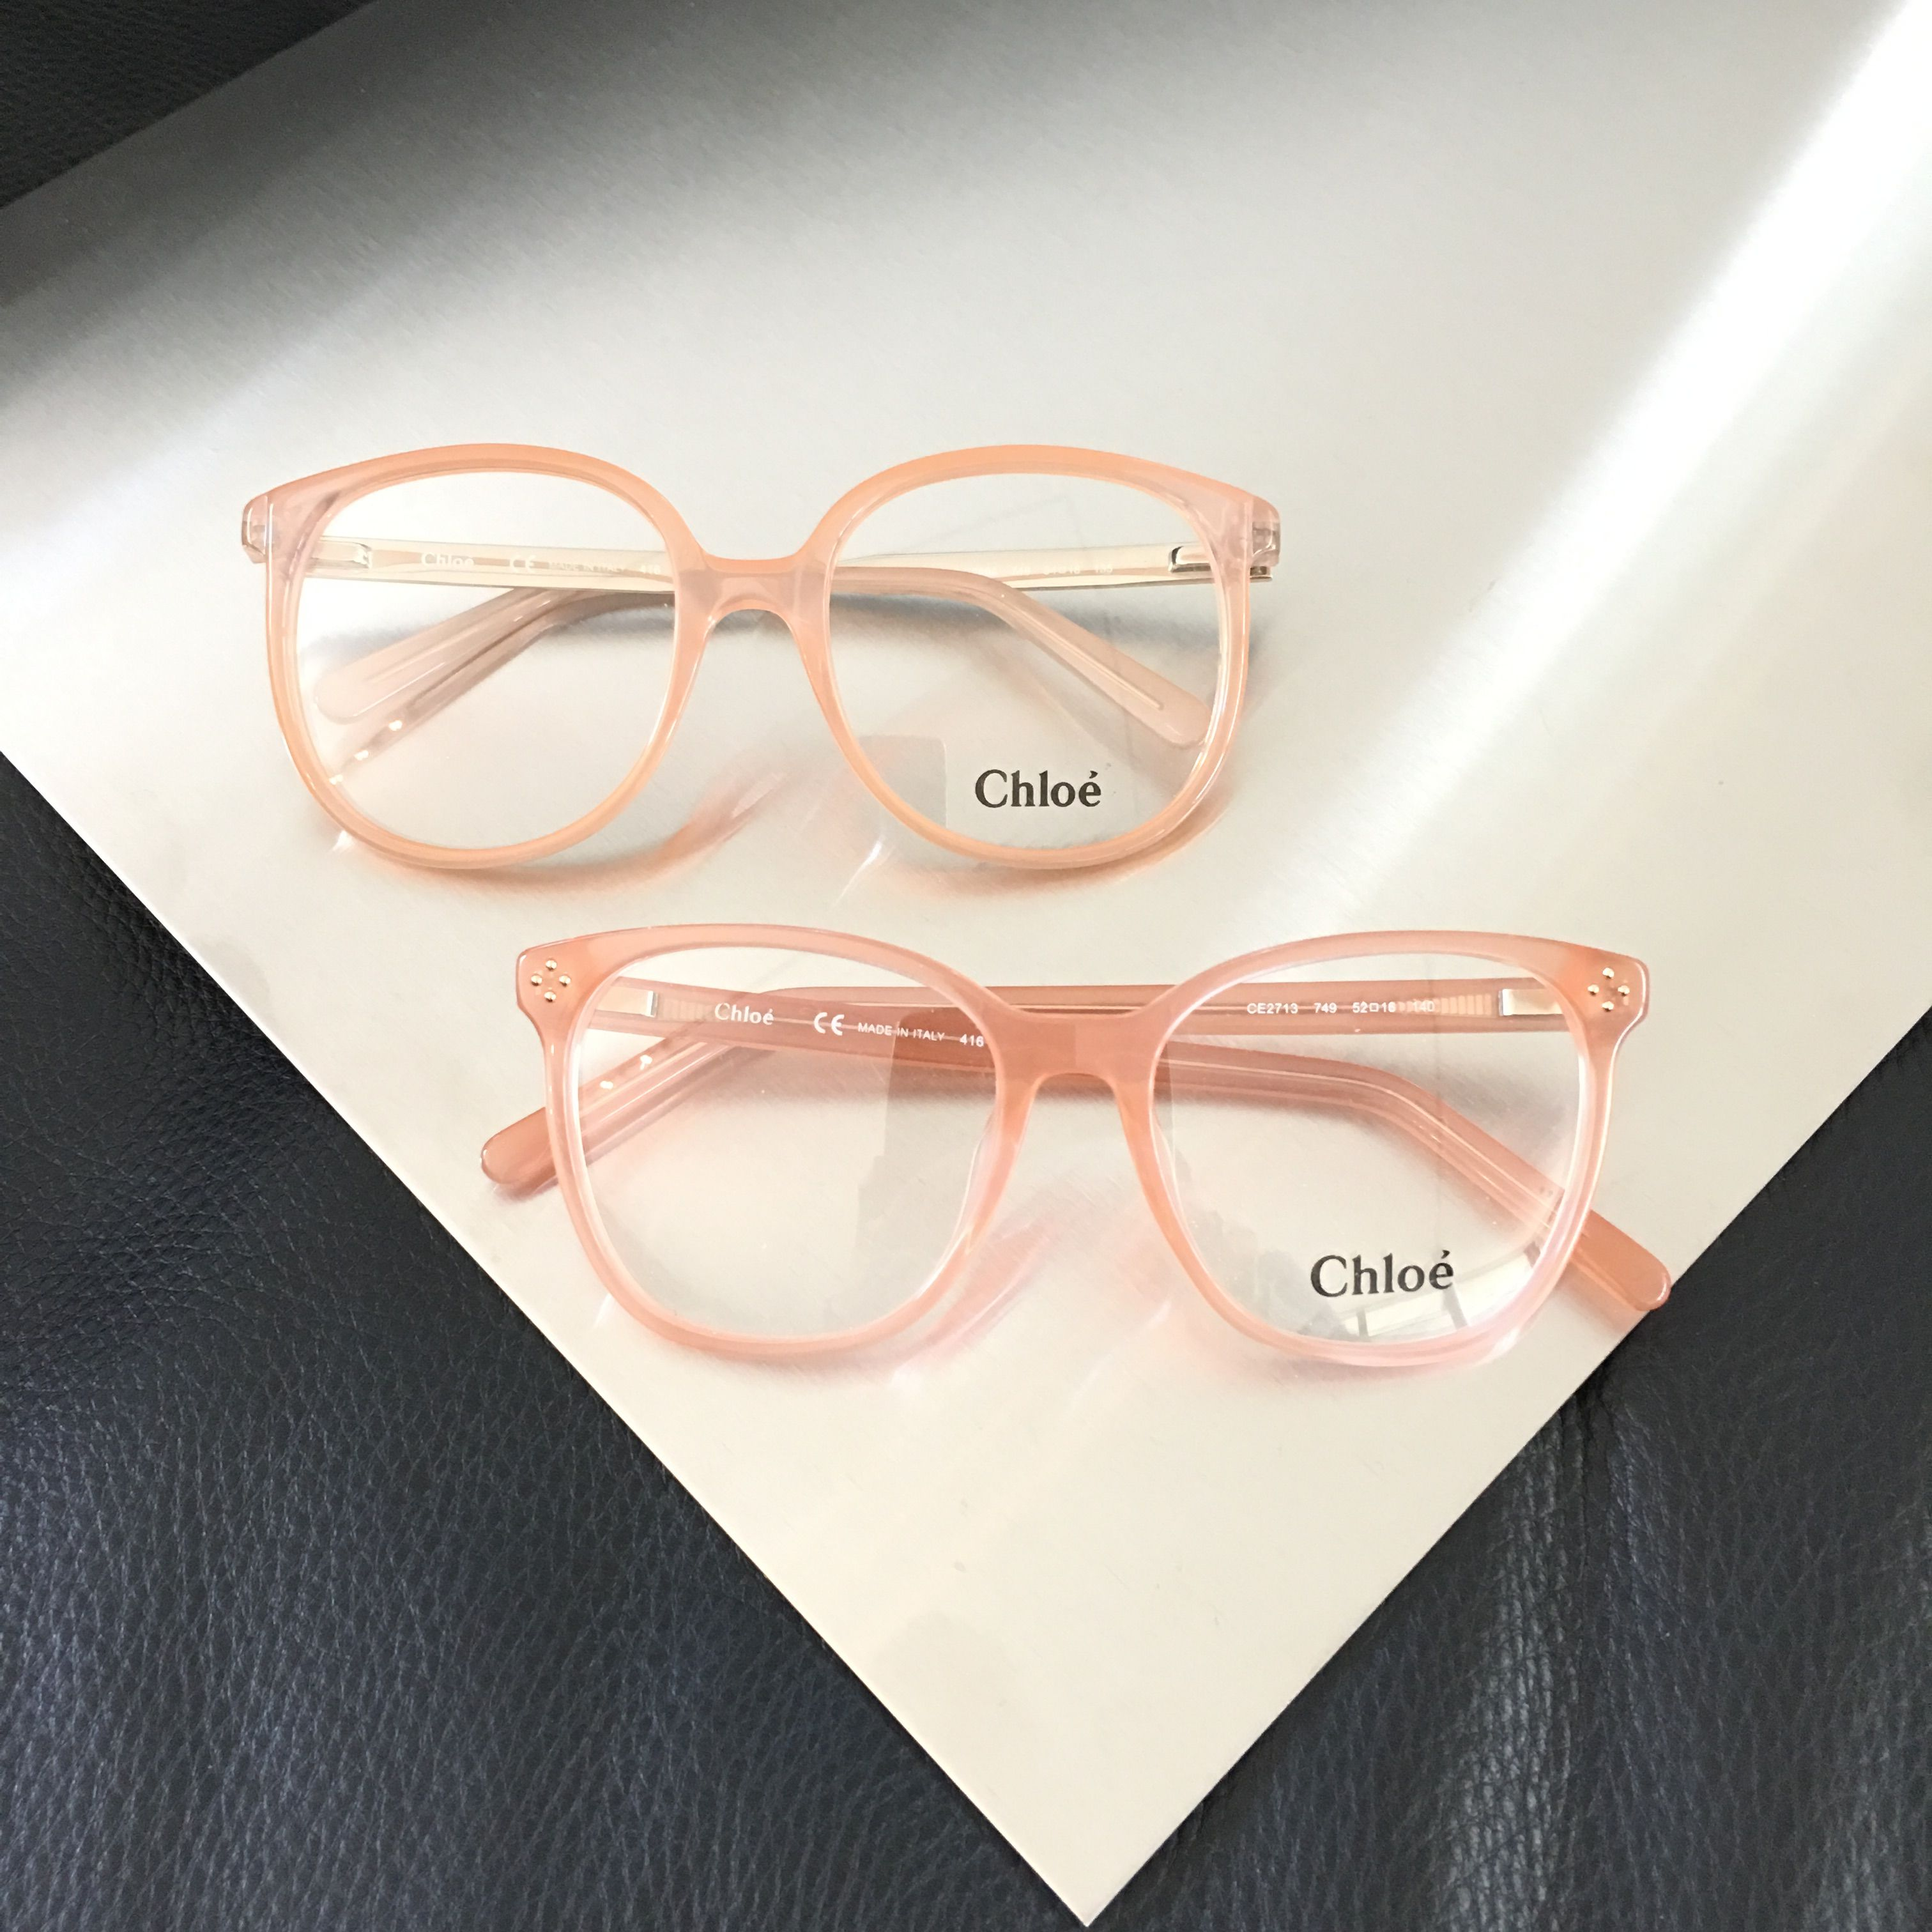 0edb53c1052 Pink crush with these Chloé frames - You can order these eyeglasses with or  without prescription lenses on our webshop www.eyecatchonline.com